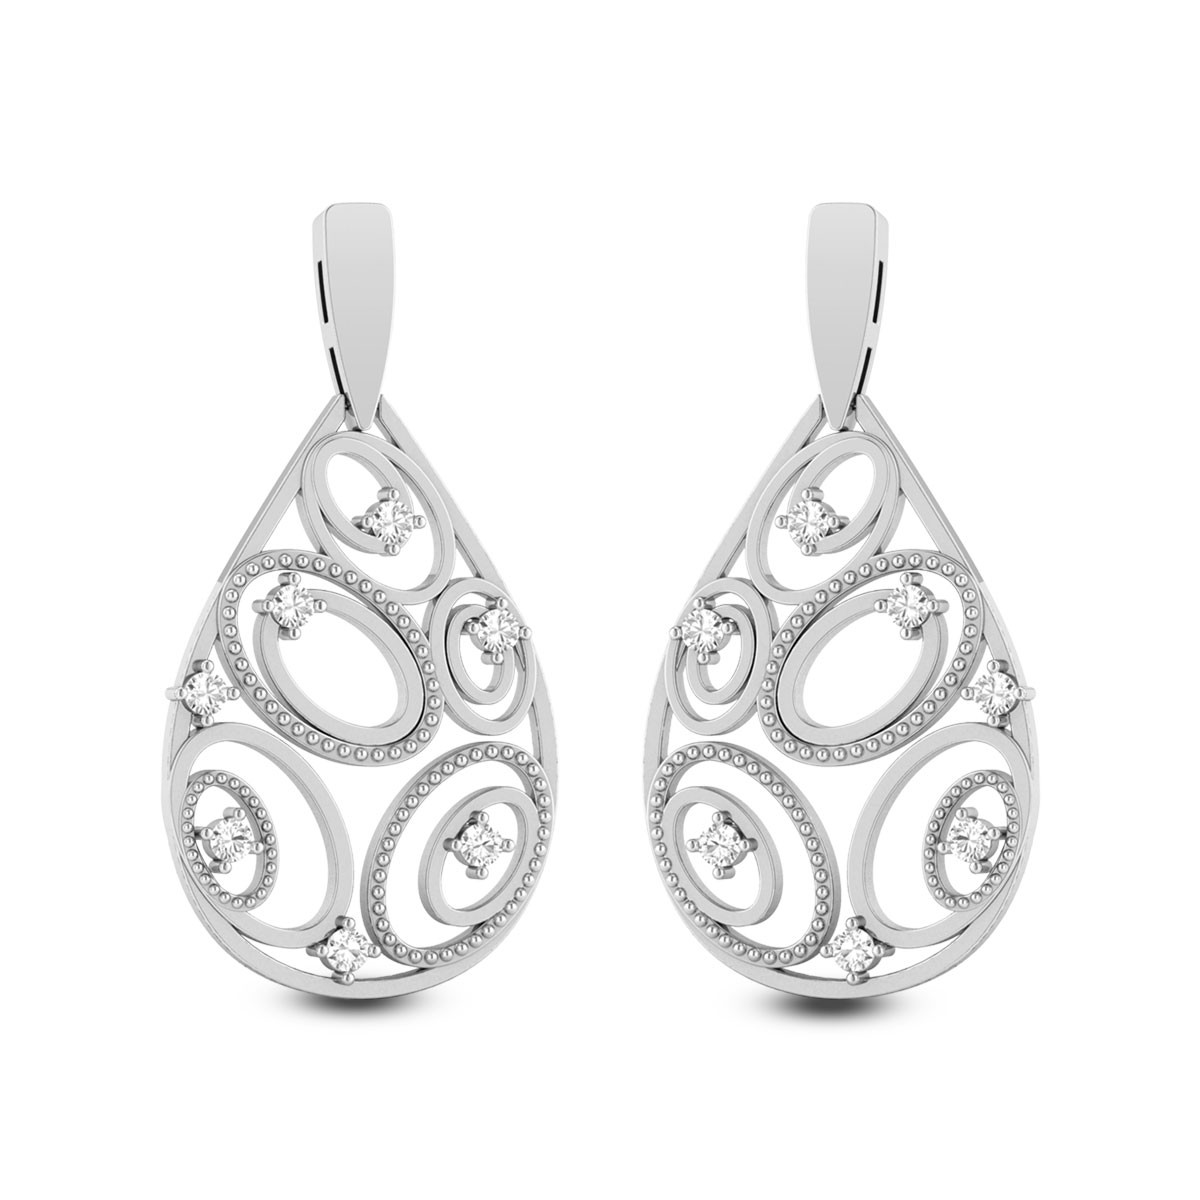 Esensa Diamond Earrings